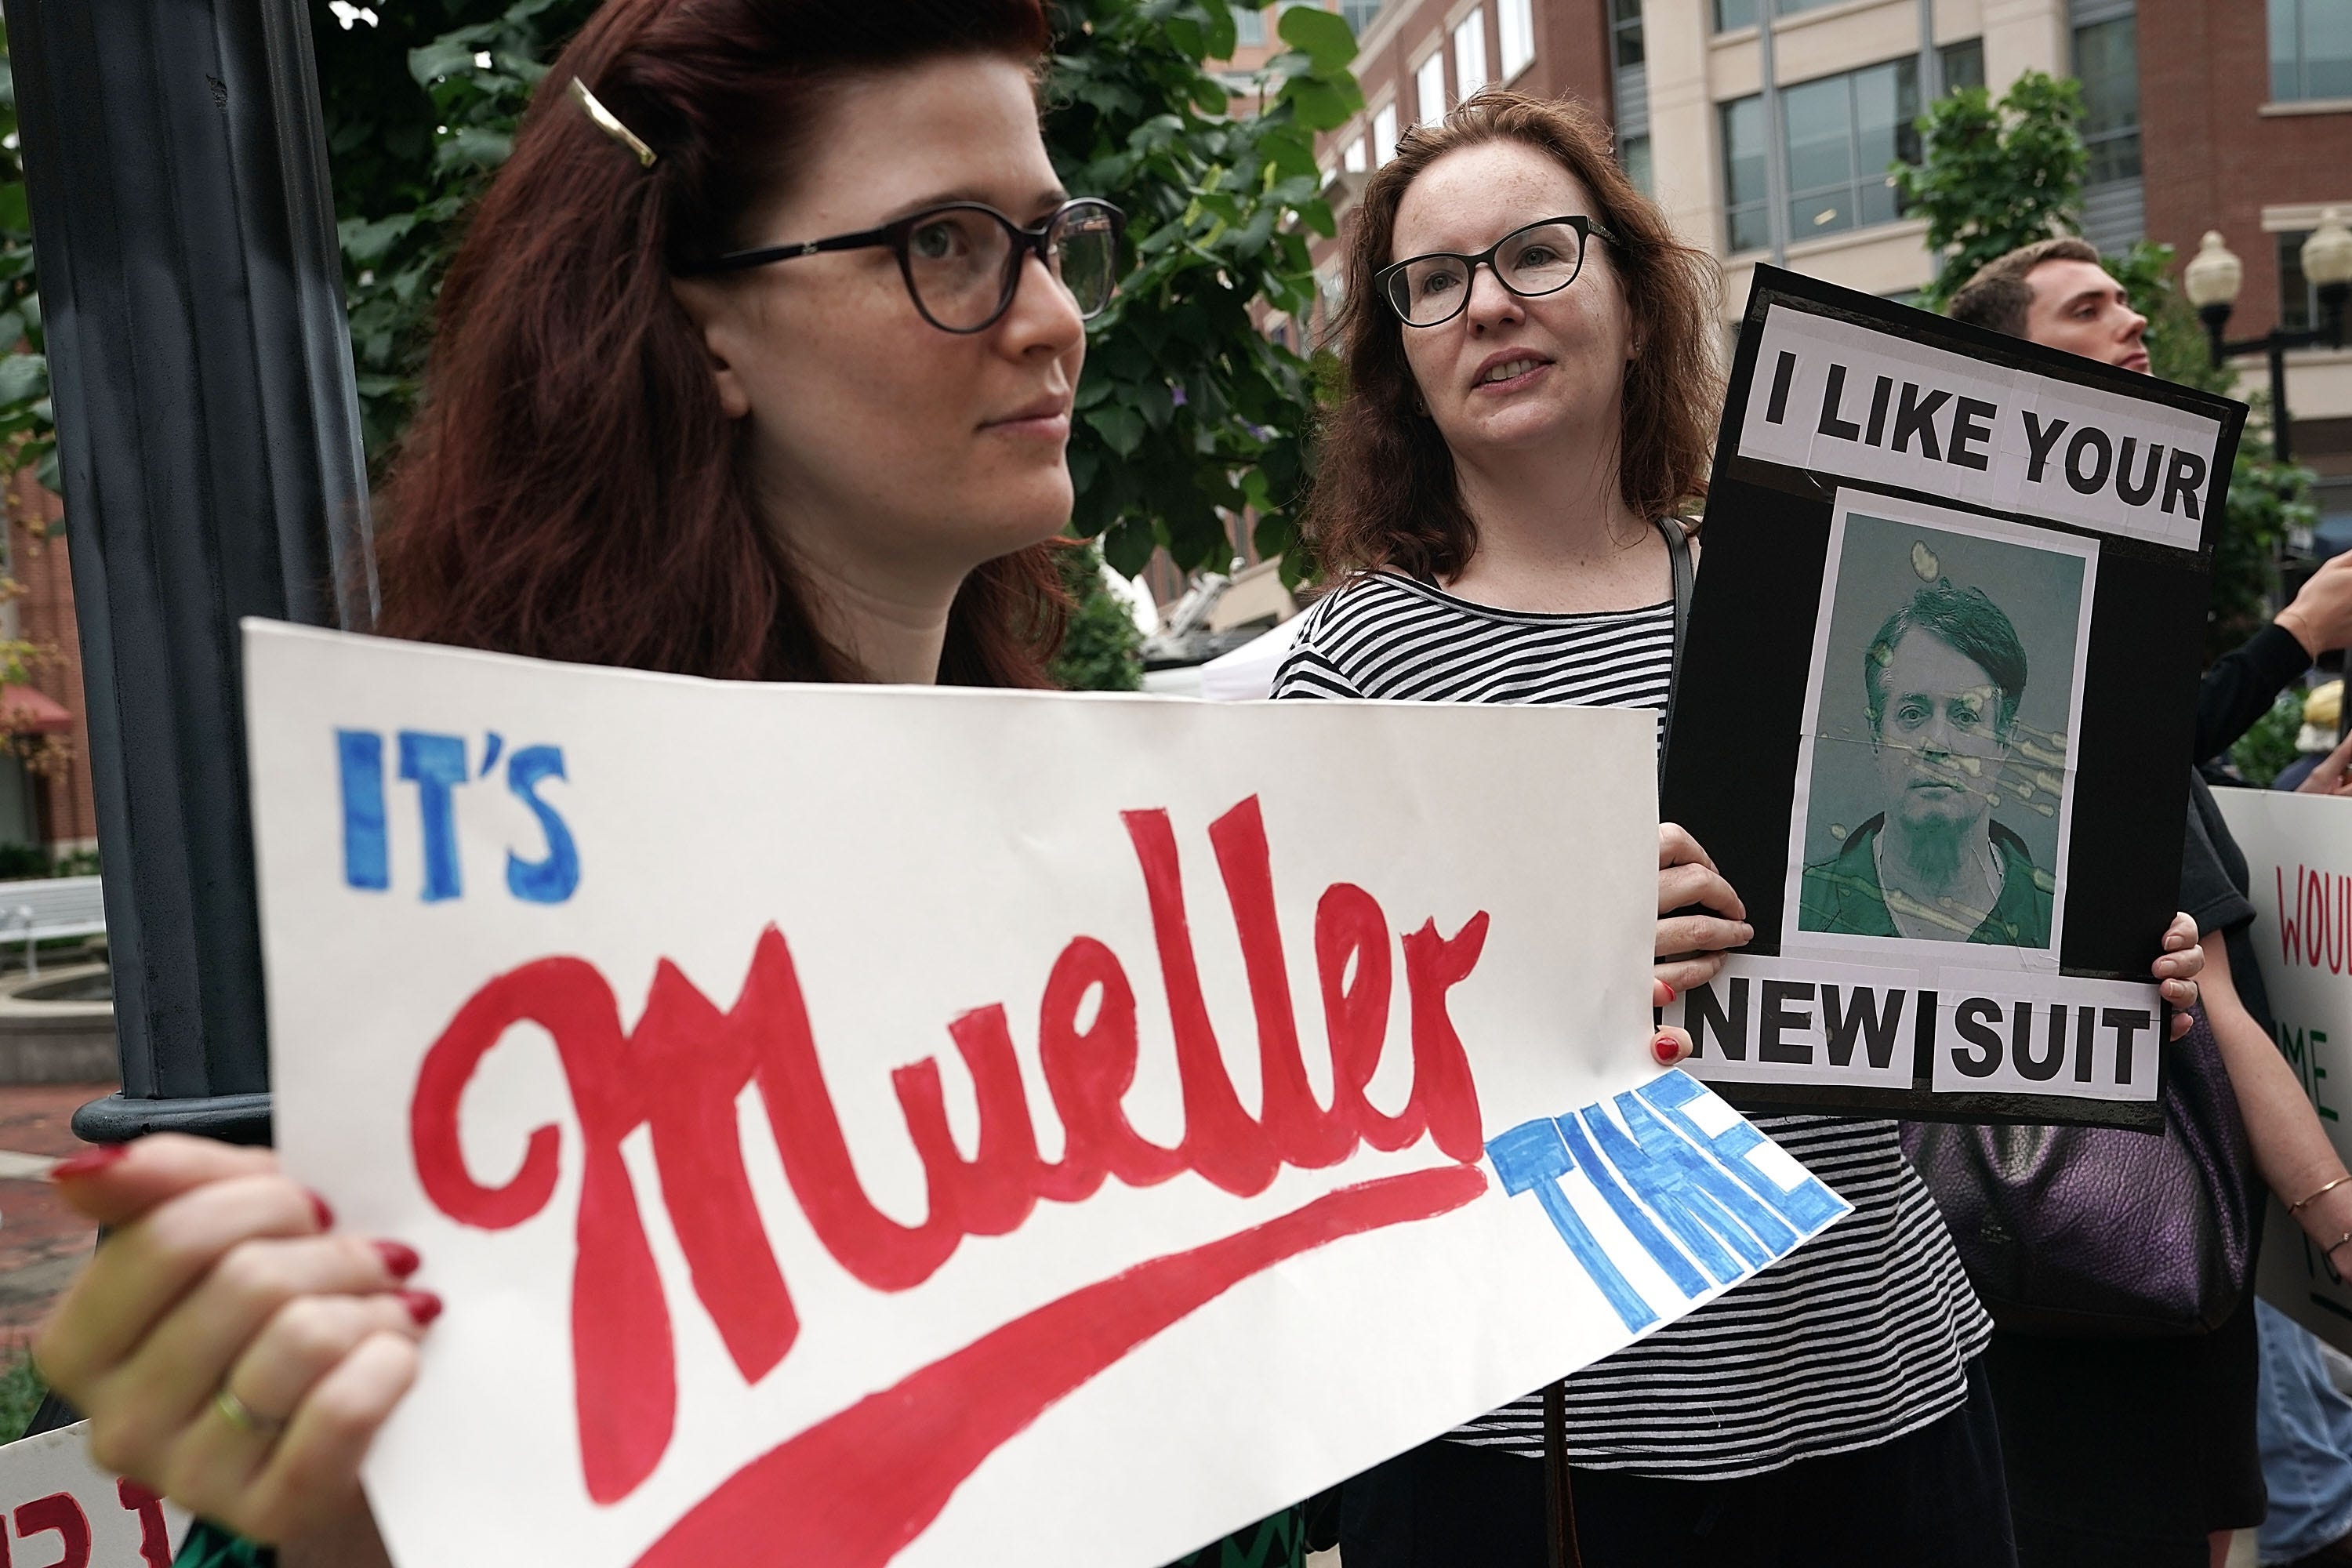 Activists hold signs during a protest outside the Albert V. Bryan United States Courthouse prior to the first day of the trial of former Trump campaign chairman Paul Manafort July 31, 2018 in Alexandria, Va. Manafort was charged with financial frauds